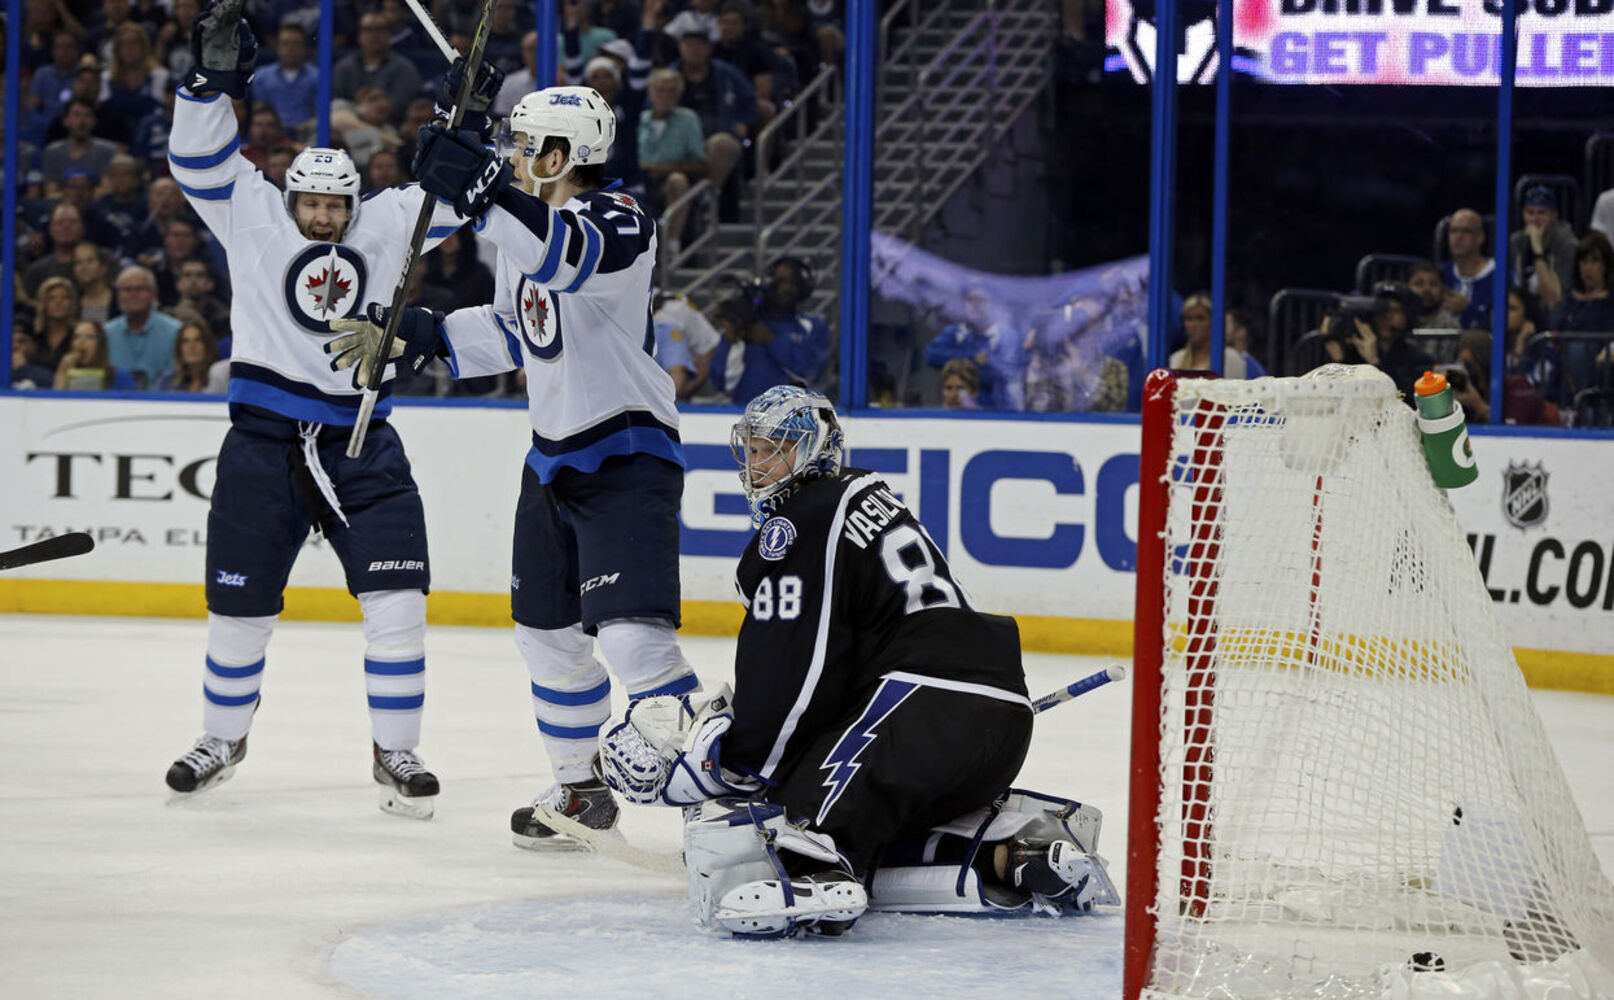 The Jets celebrate Drew Stafford's third-period goal. (Mike Carlson / The Associated Press)